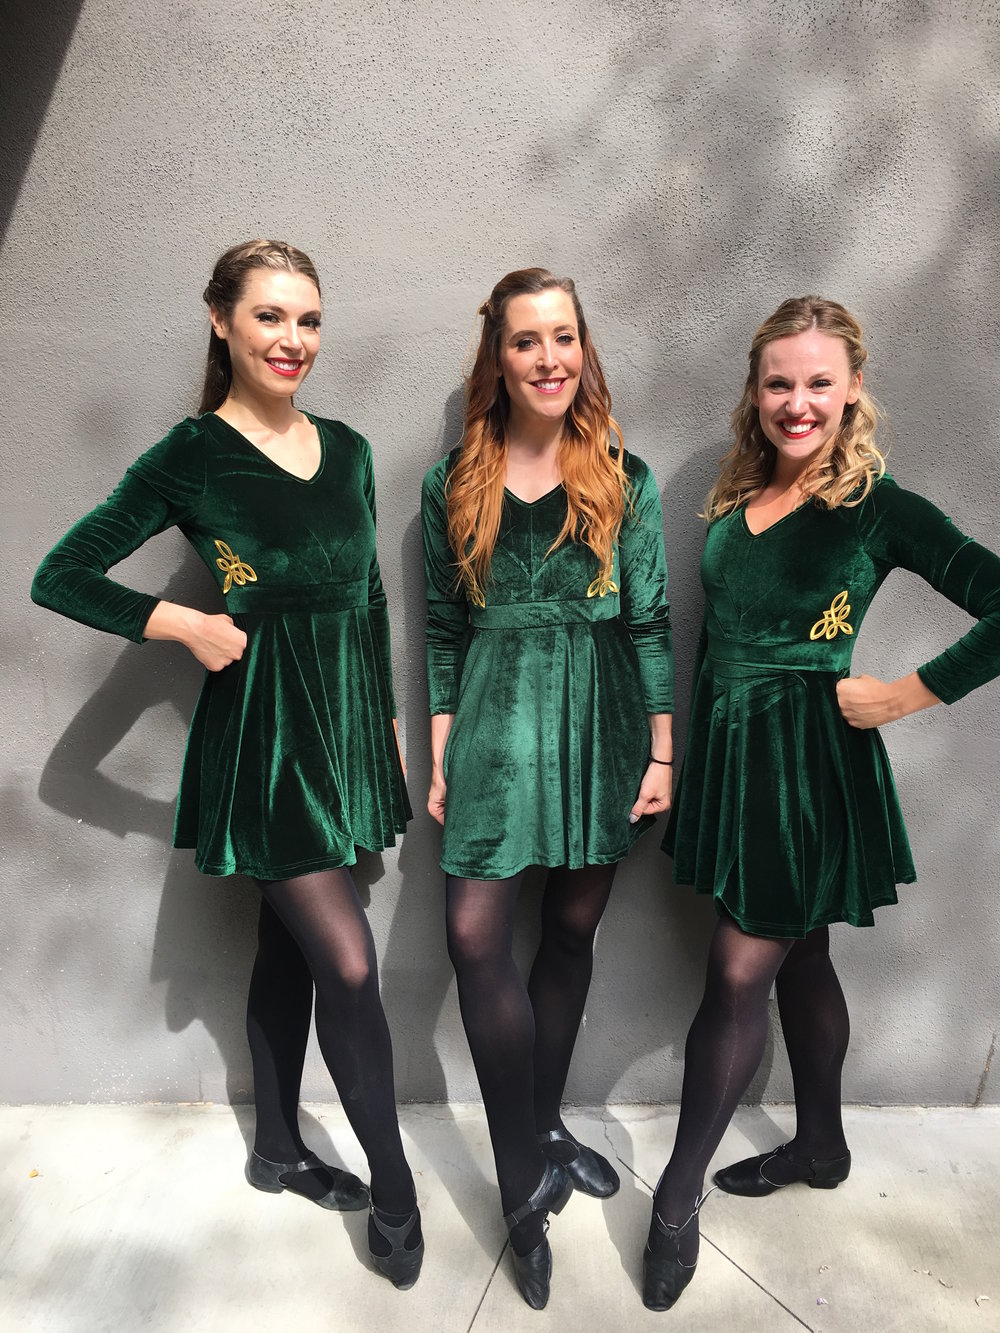 Three Irish Dancers